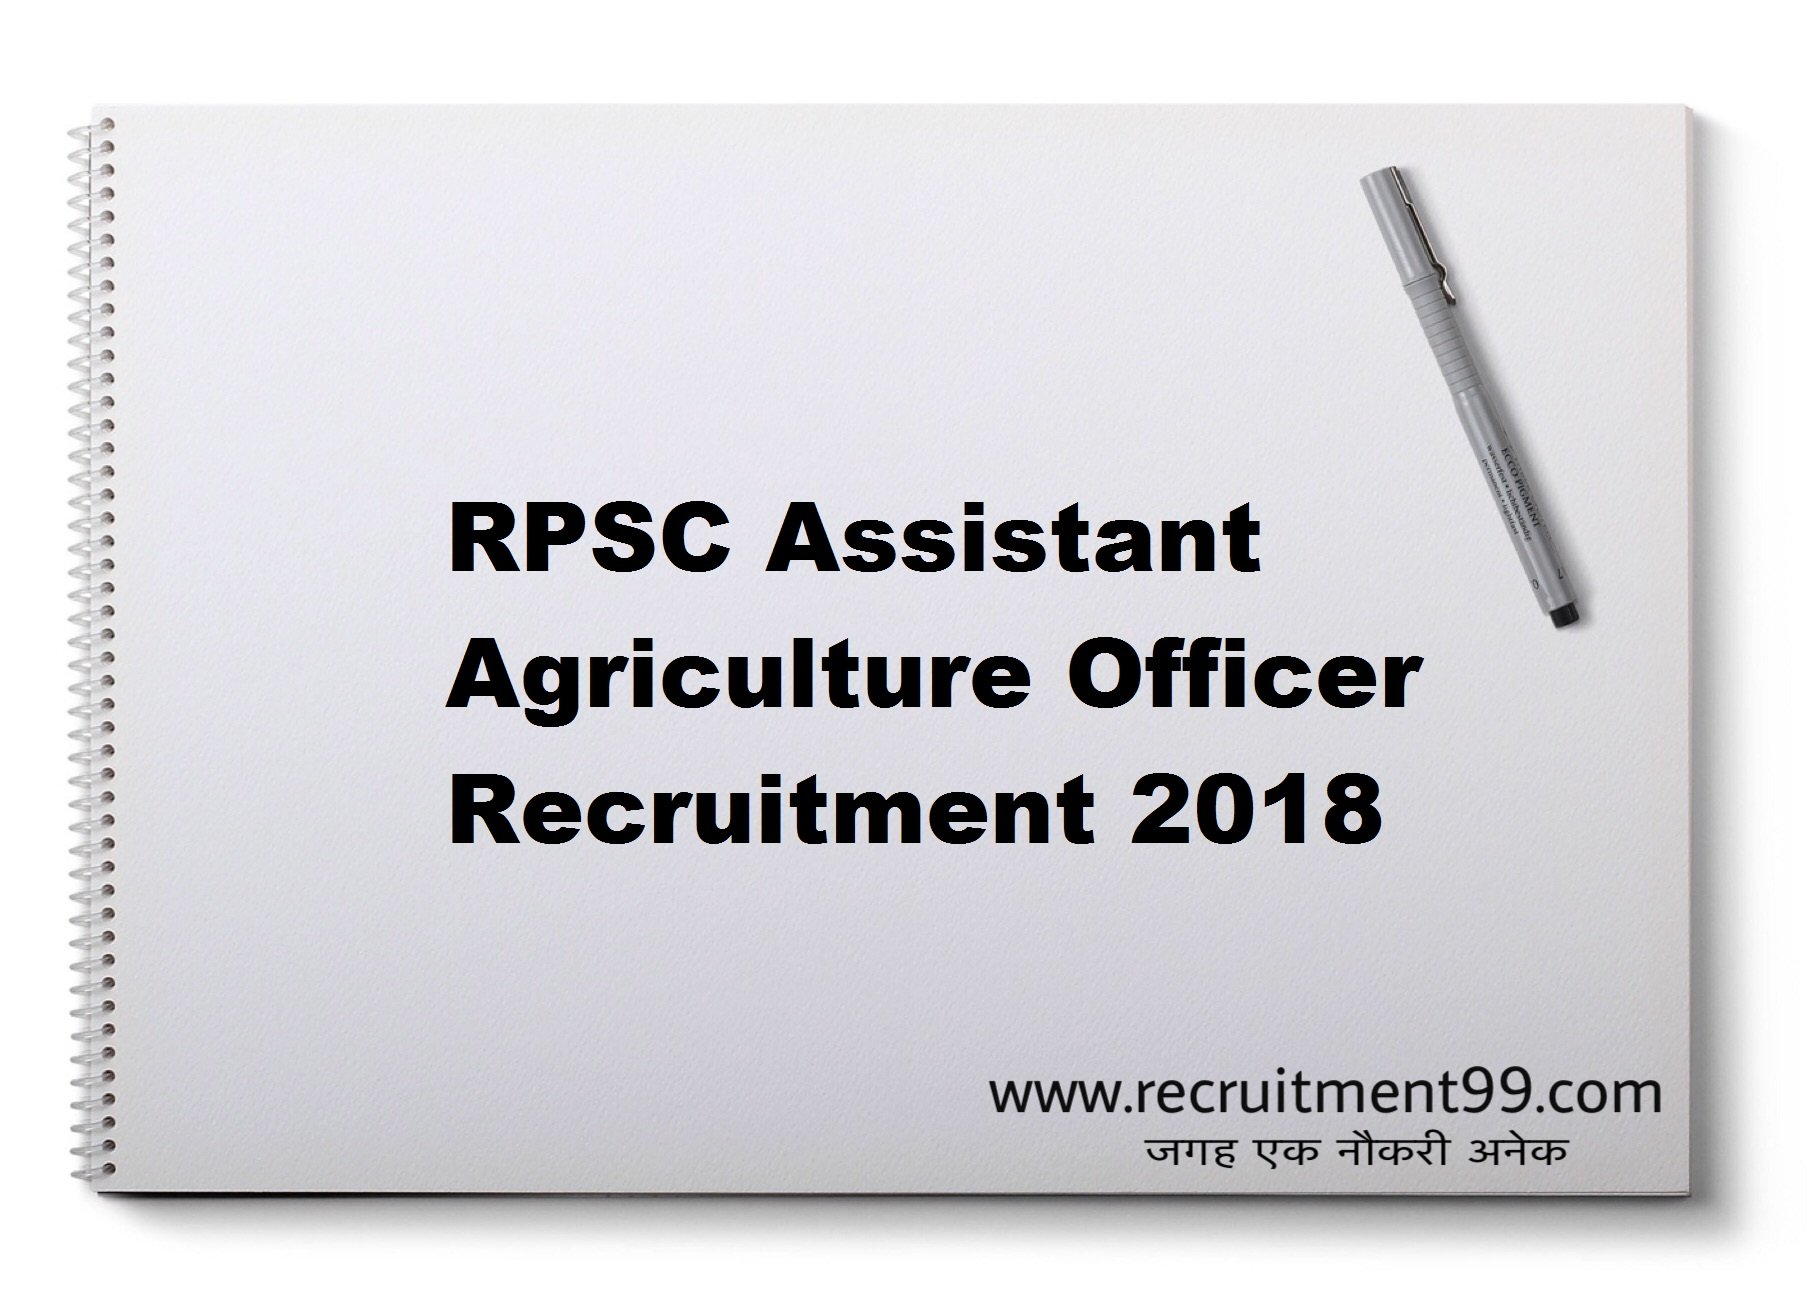 RPSC Assistant Agriculture Officer Recruitment Admit Card Result 2018